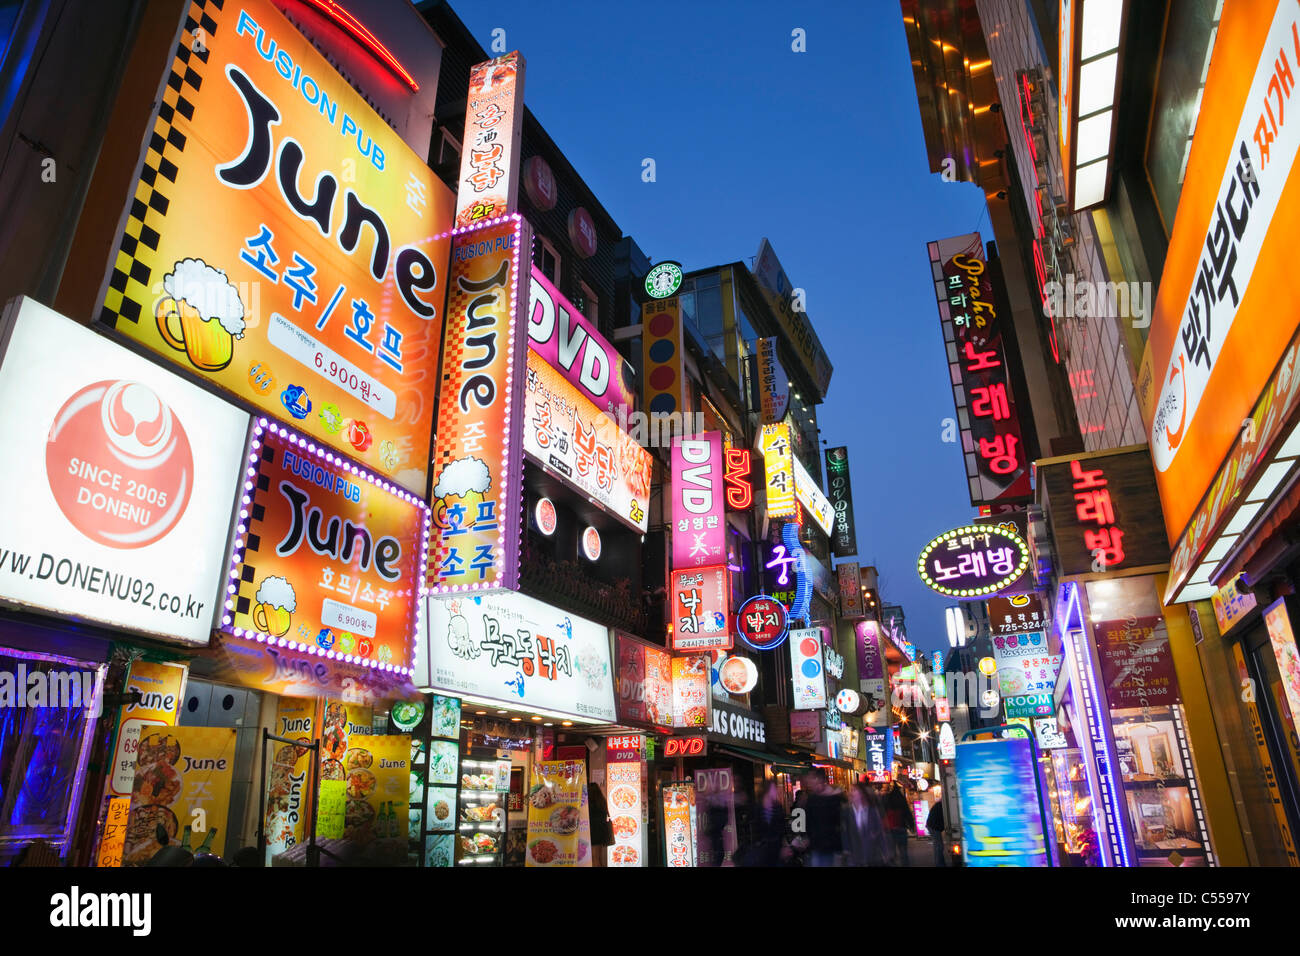 Commercial signboards at a market, Myeongdong, Seoul, South Korea - Stock Image